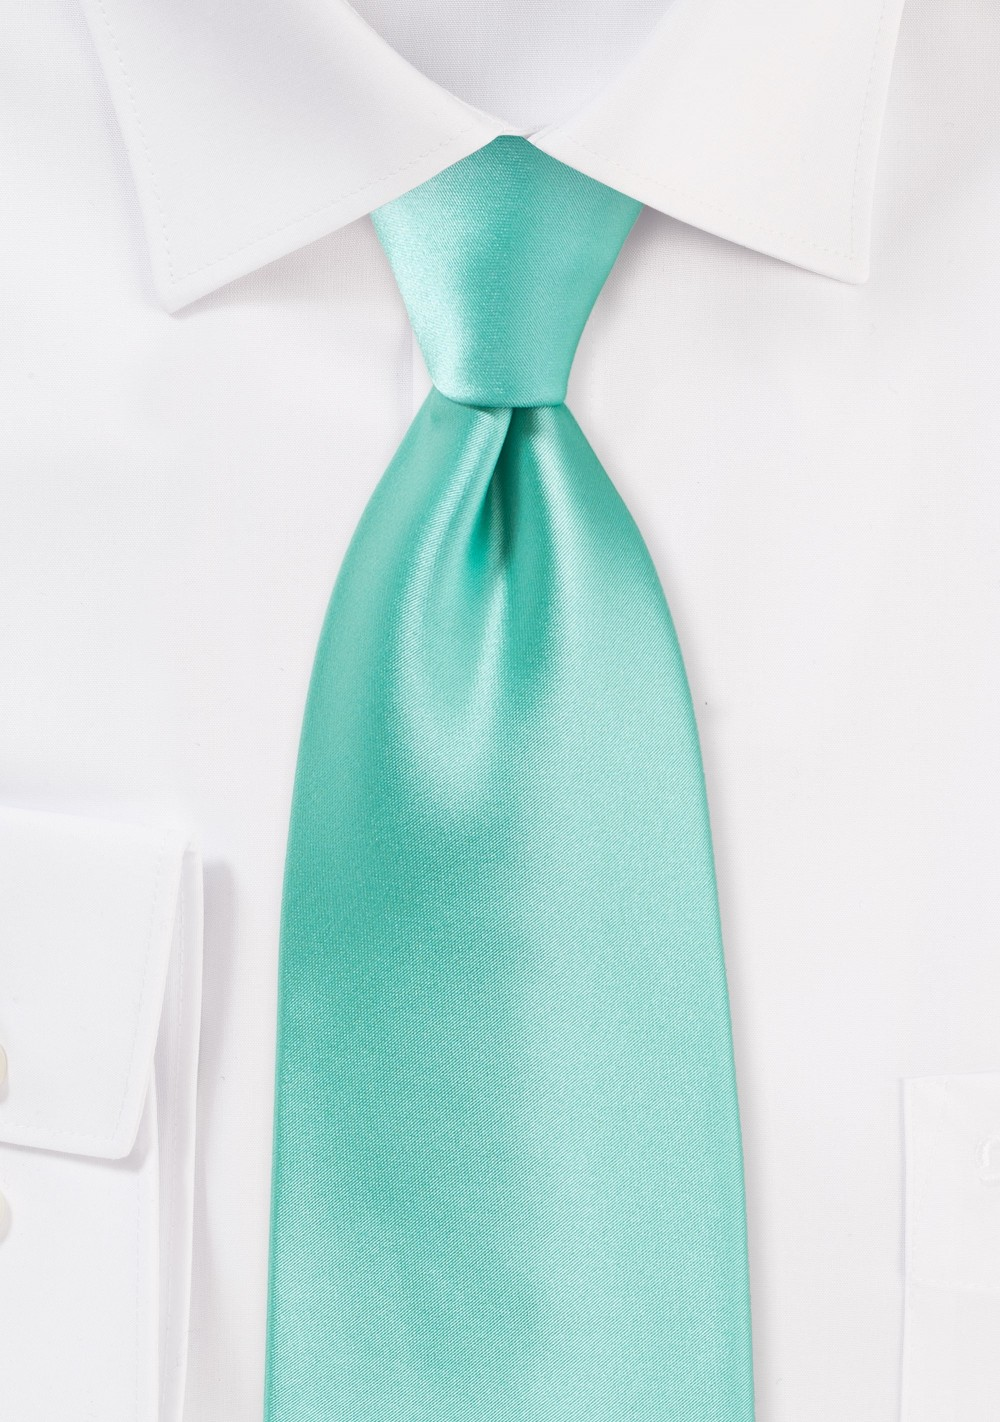 Beach Glass Colored Tie for Kids